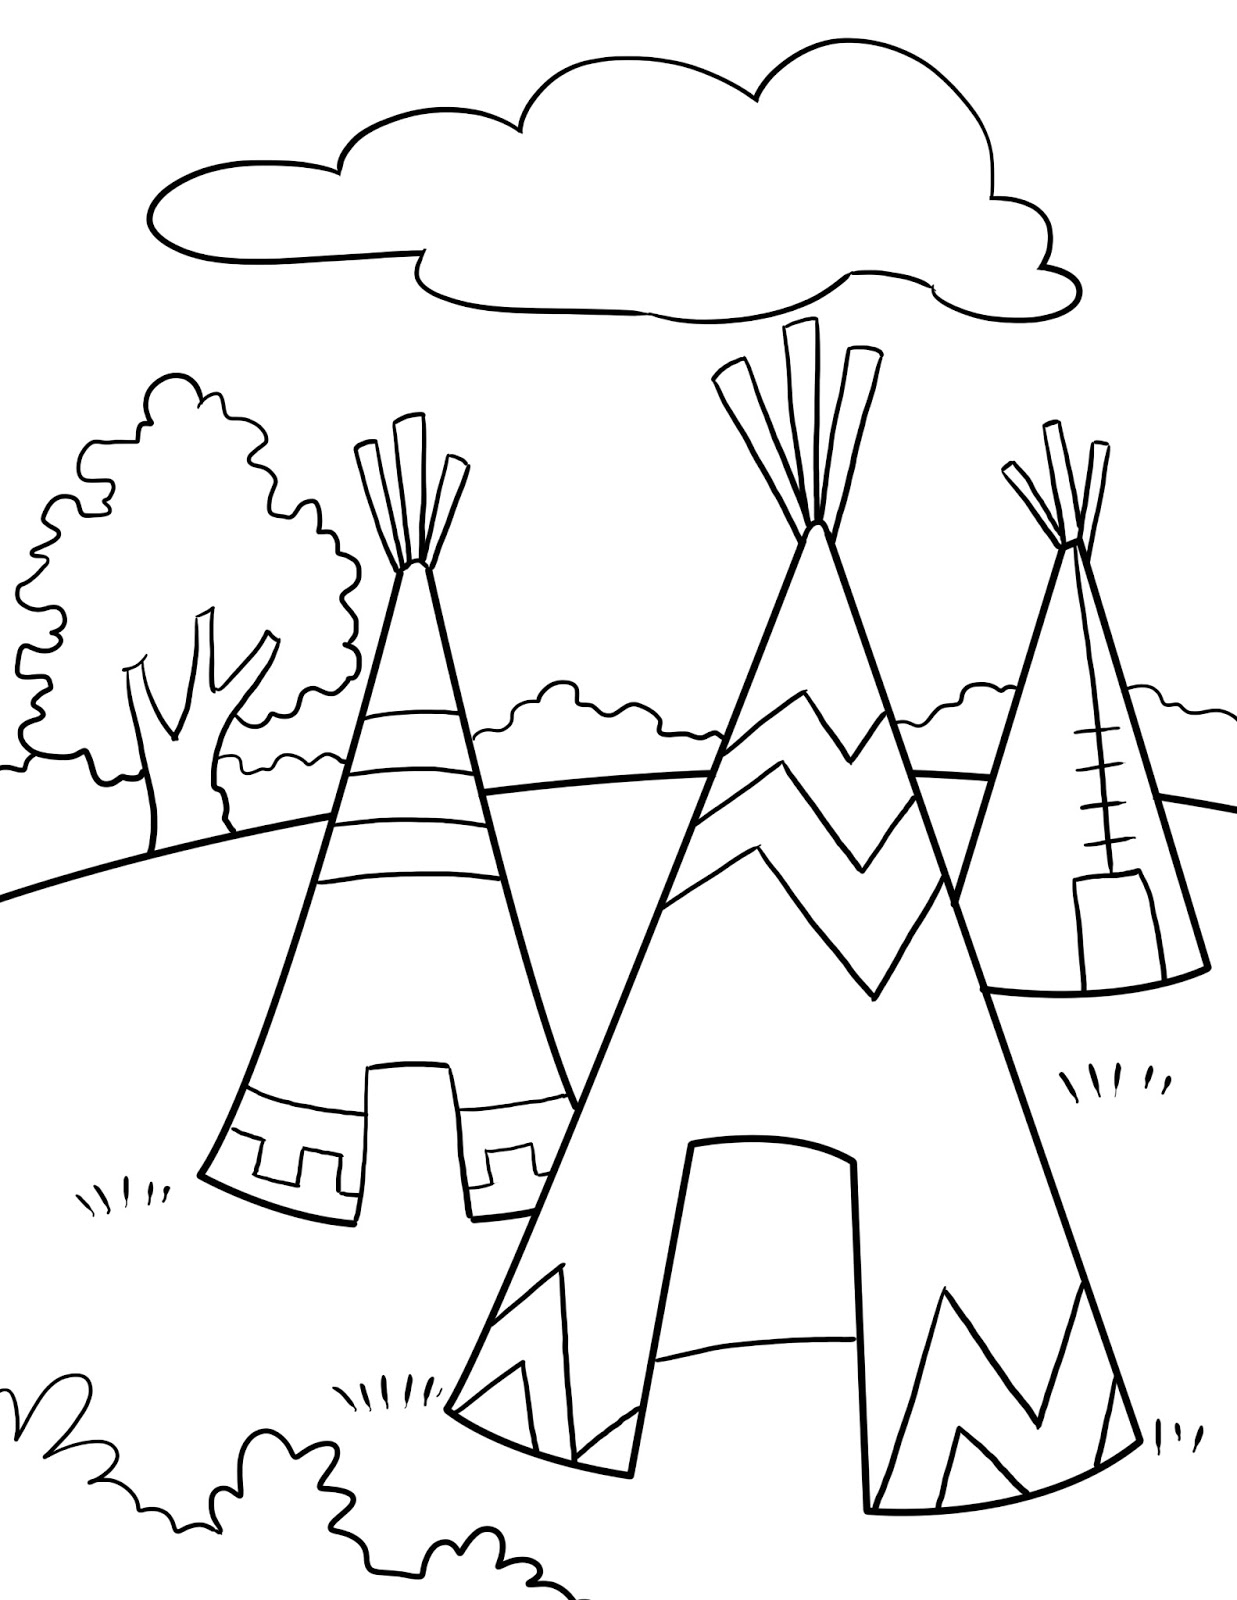 Free coloring pages.com/thanksgiving